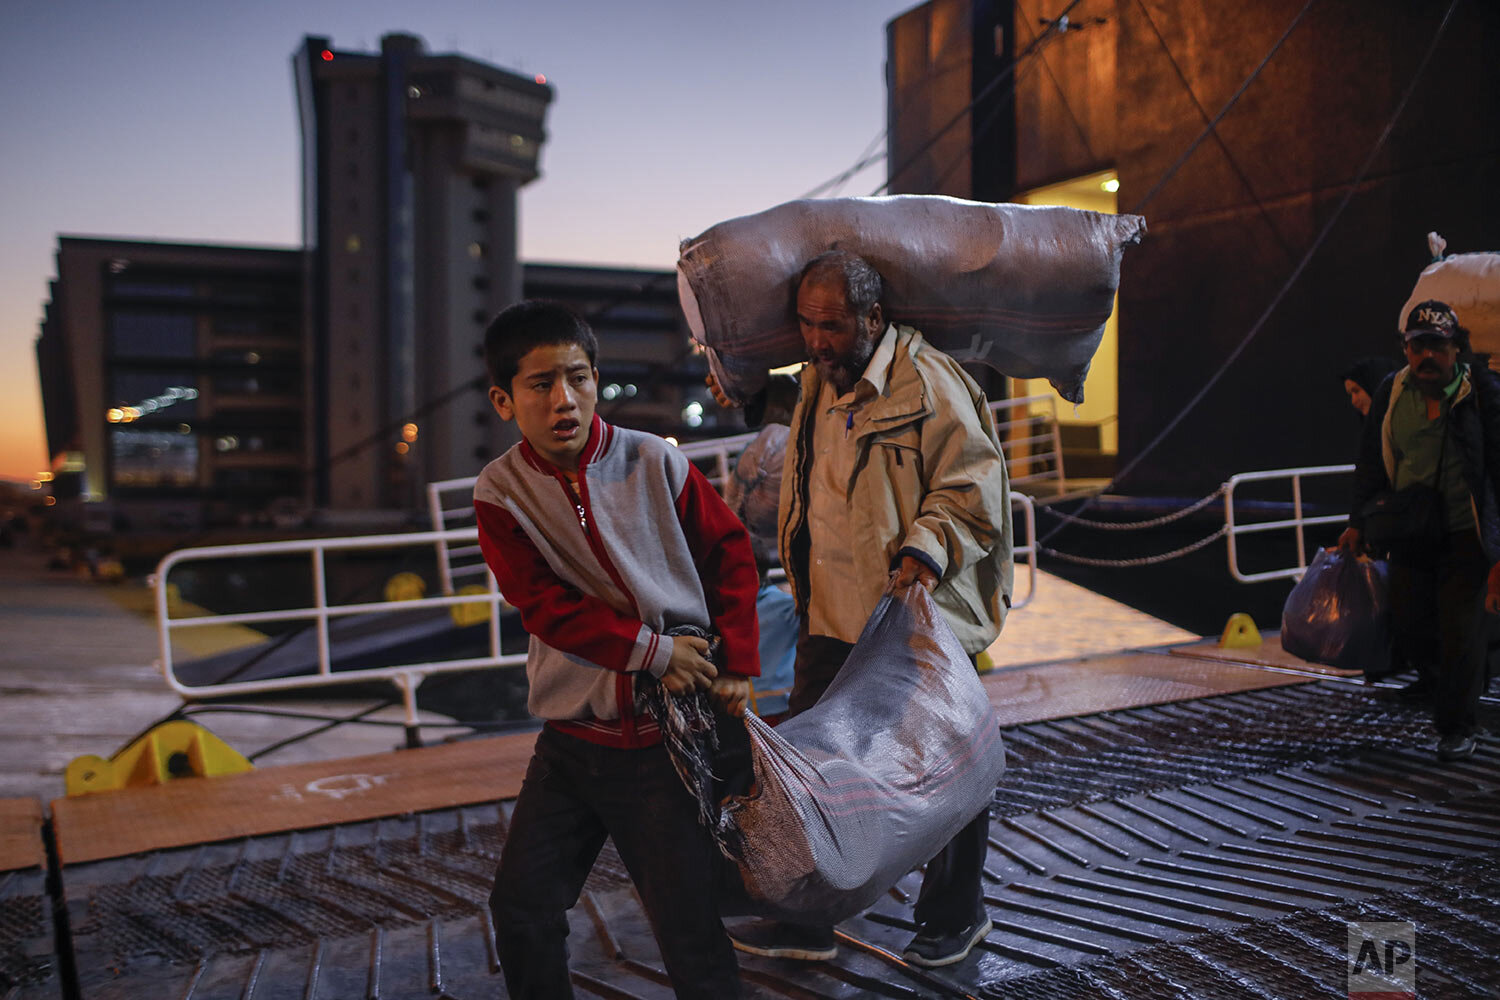 Migrants and refugees carry their belongings as they disembark from a ferry at the port of Piraeus, near Athens, Tuesday, Oct. 1, 2019. (AP Photo/Petros Giannakouris)